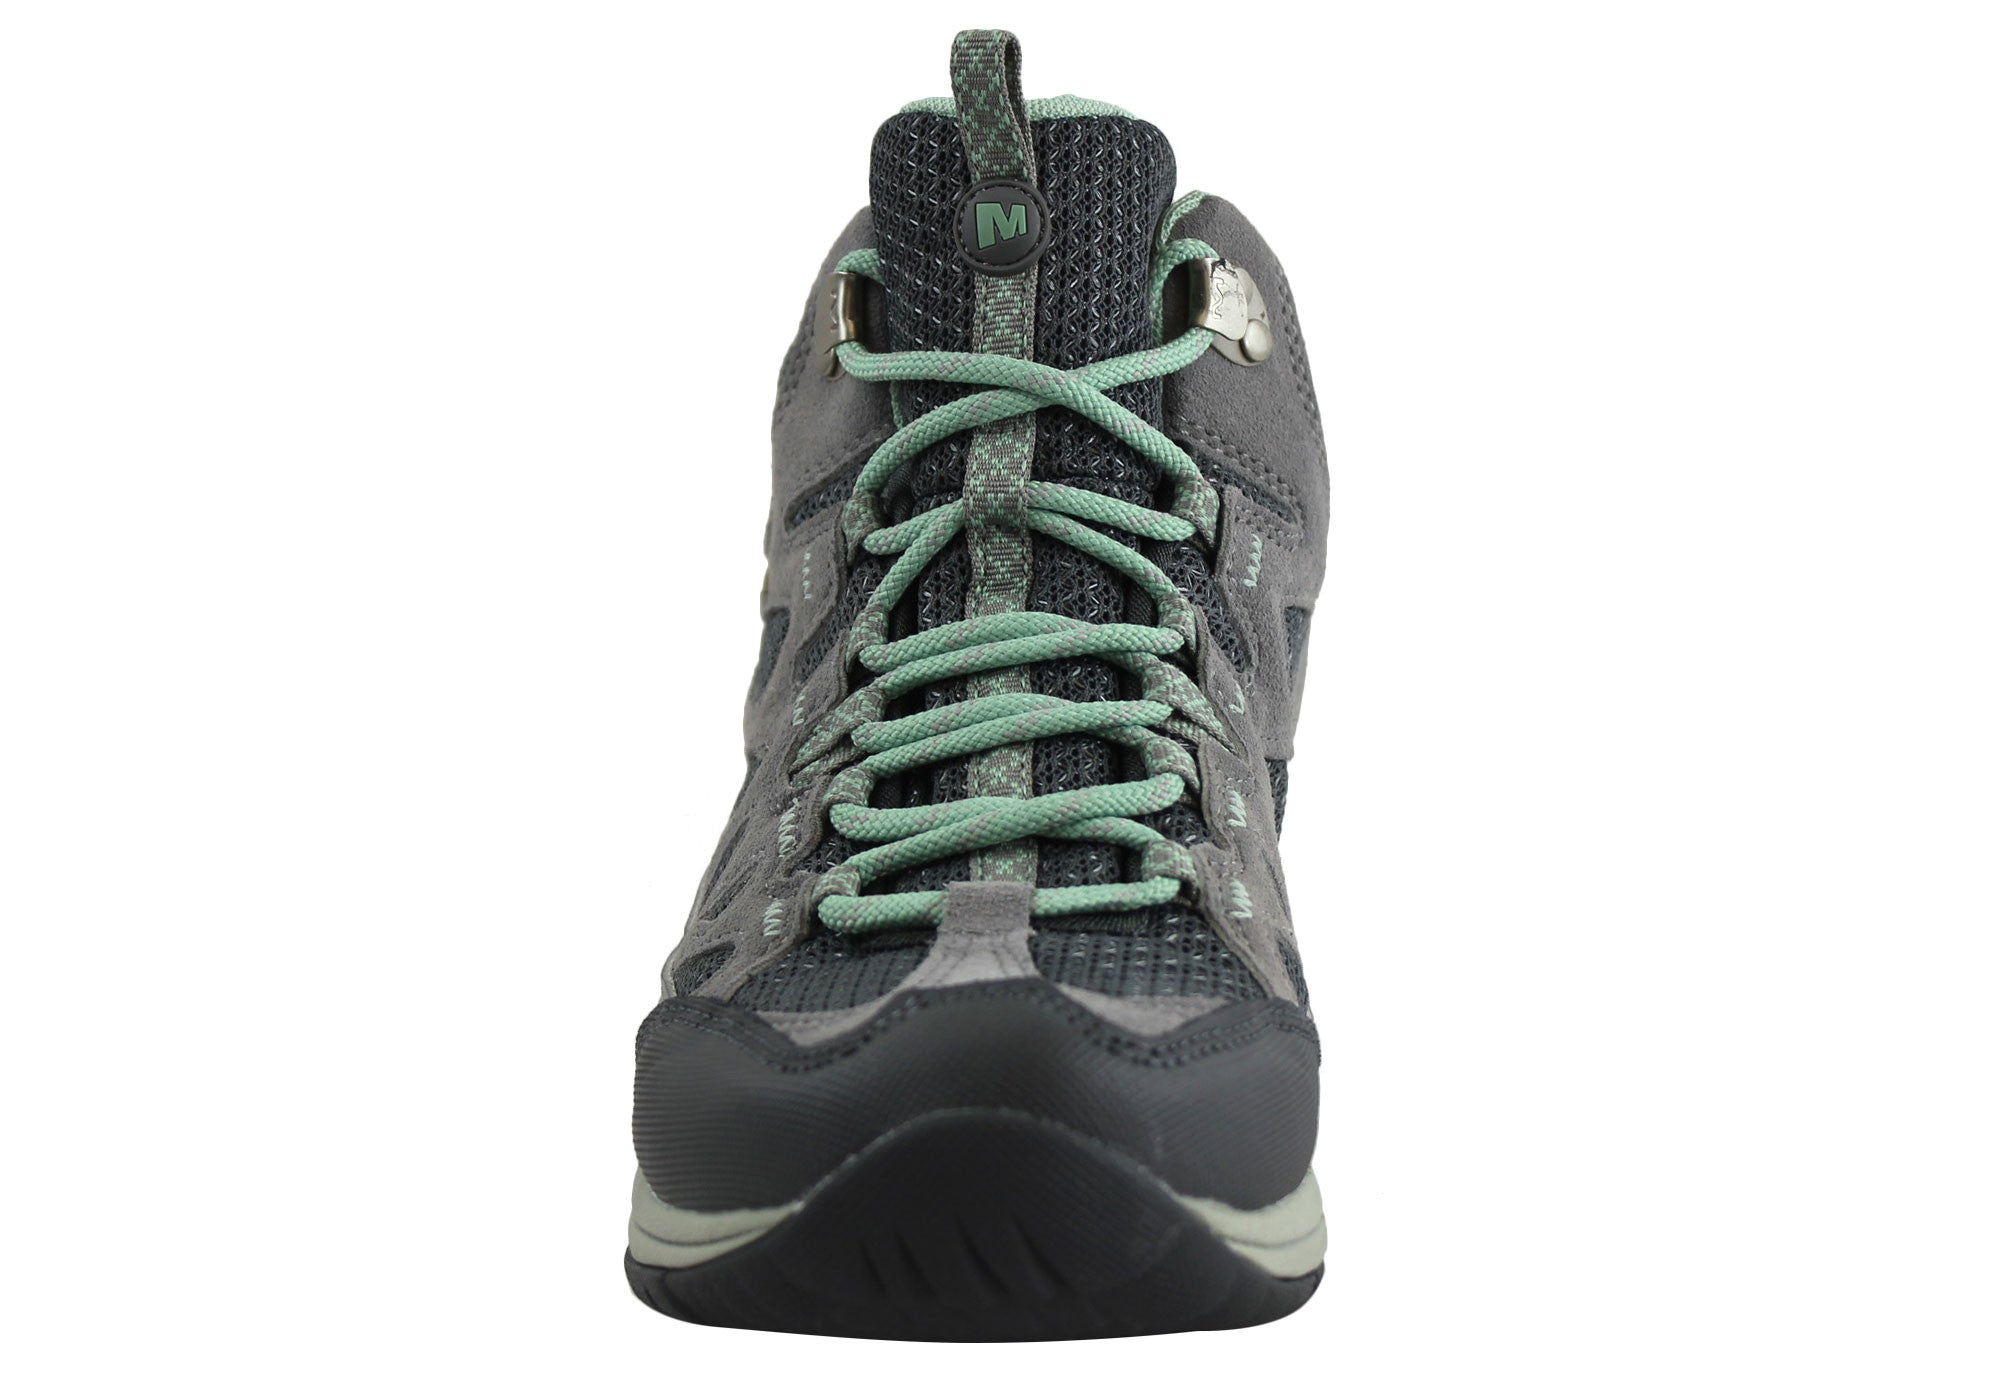 Merrell Zeolite Mid Waterproof Womens Hiking Boots